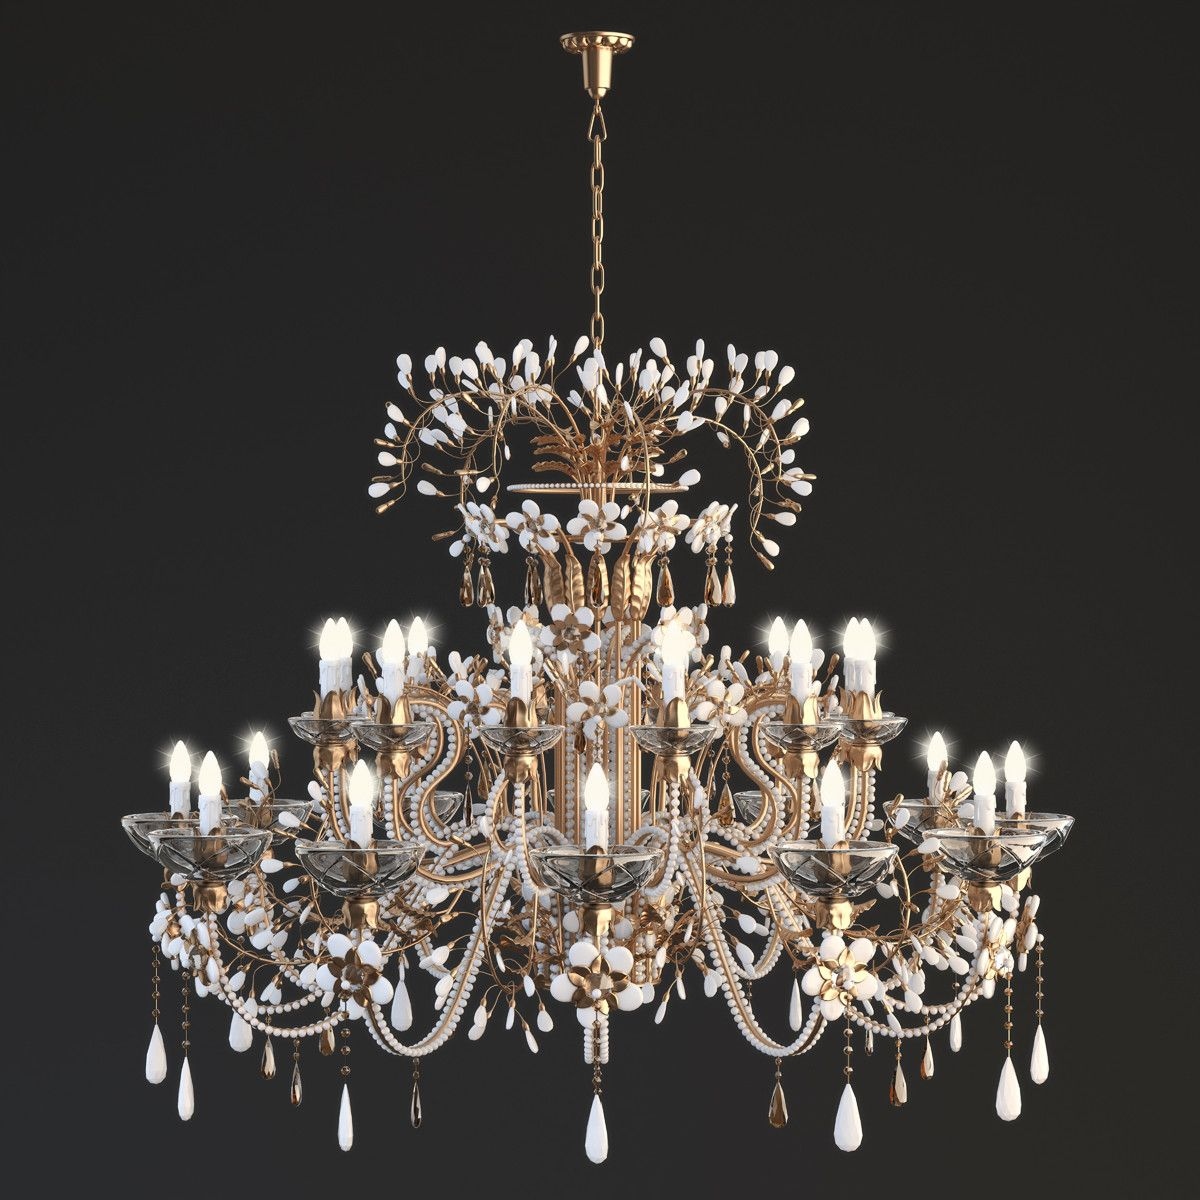 3d mechini chandelier model 3d model lamps pinterest 3d mechini chandelier model 3d model aloadofball Image collections